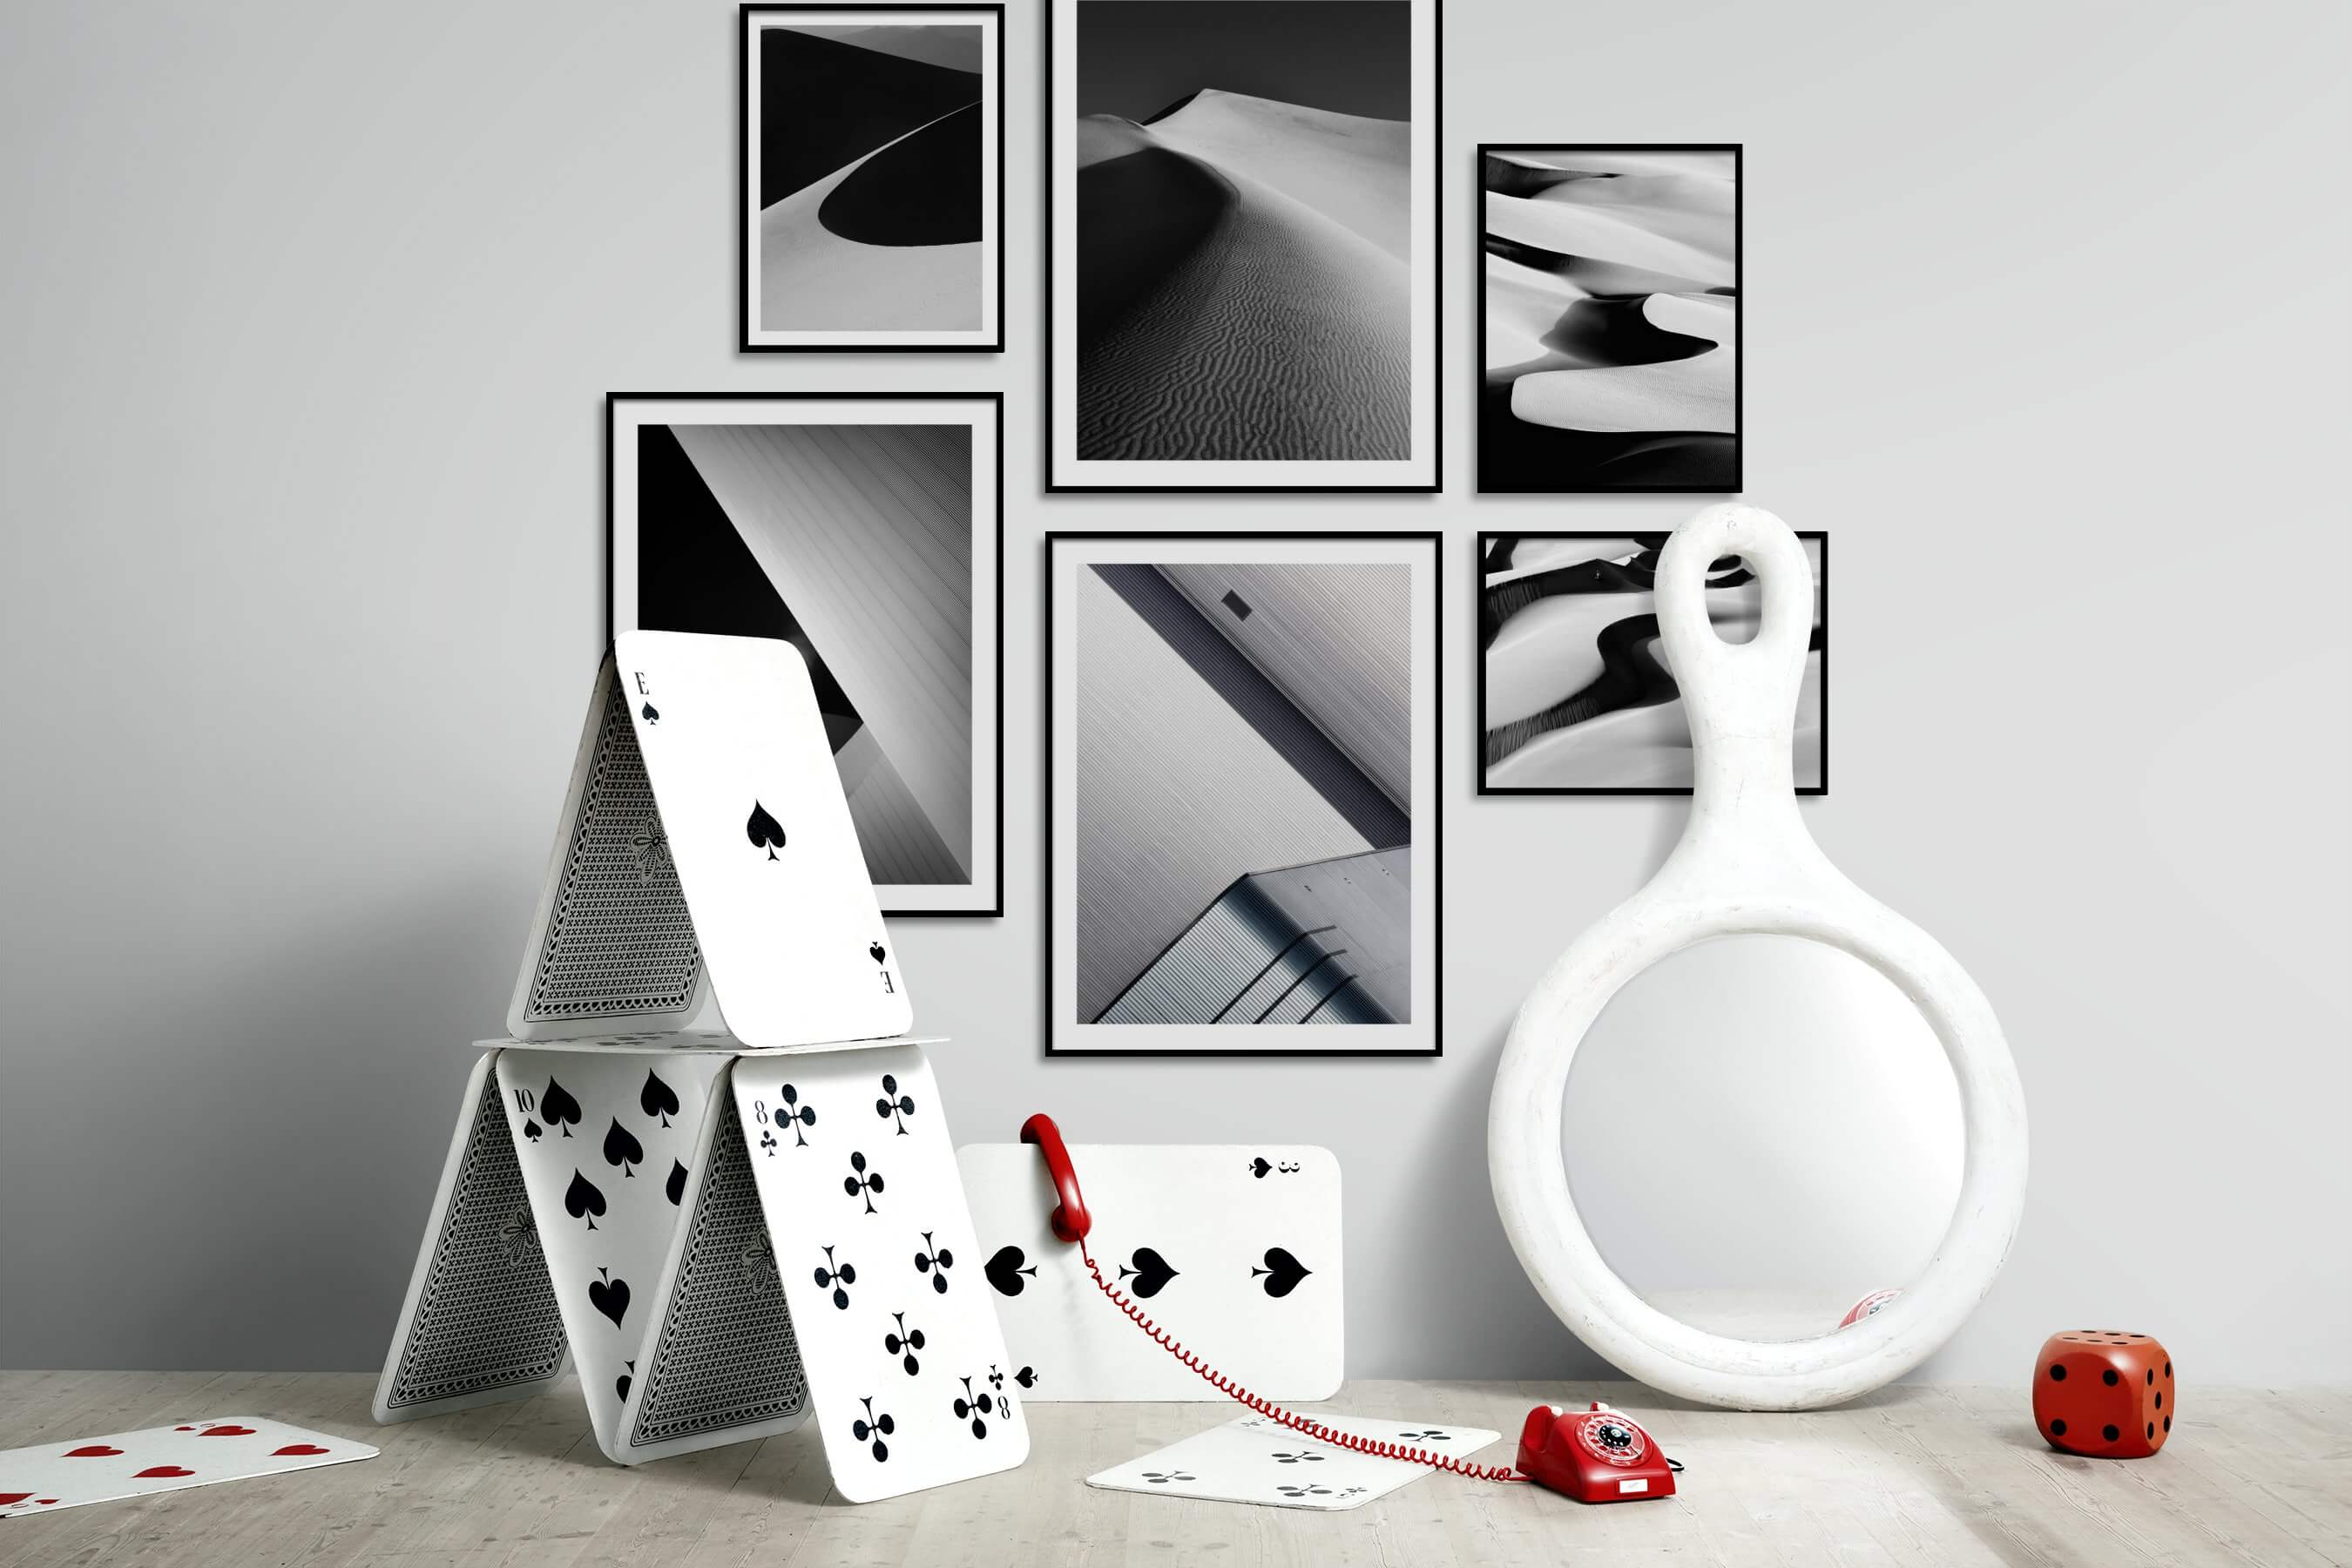 Gallery wall idea with six framed pictures arranged on a wall depicting Black & White, For the Minimalist, Nature, and For the Moderate